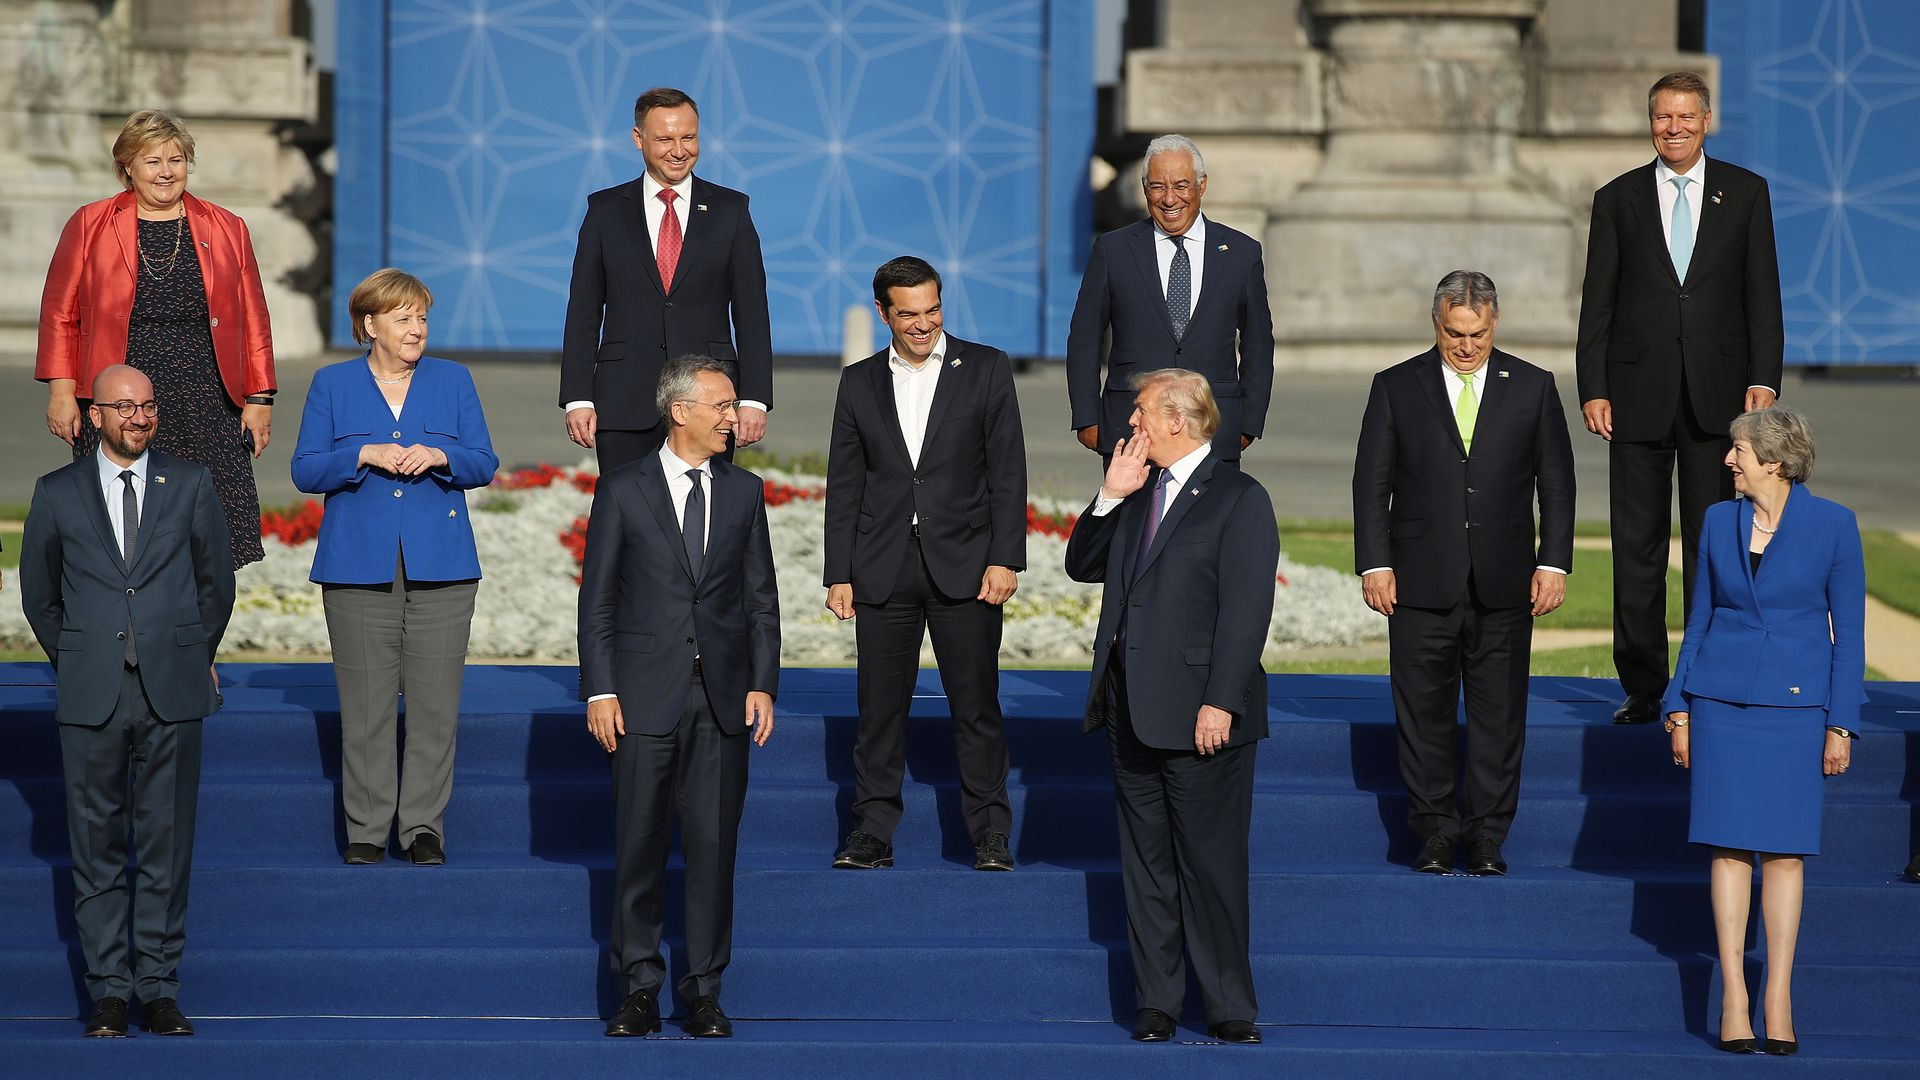 Trump stands for a photo with NATO leaders on steps